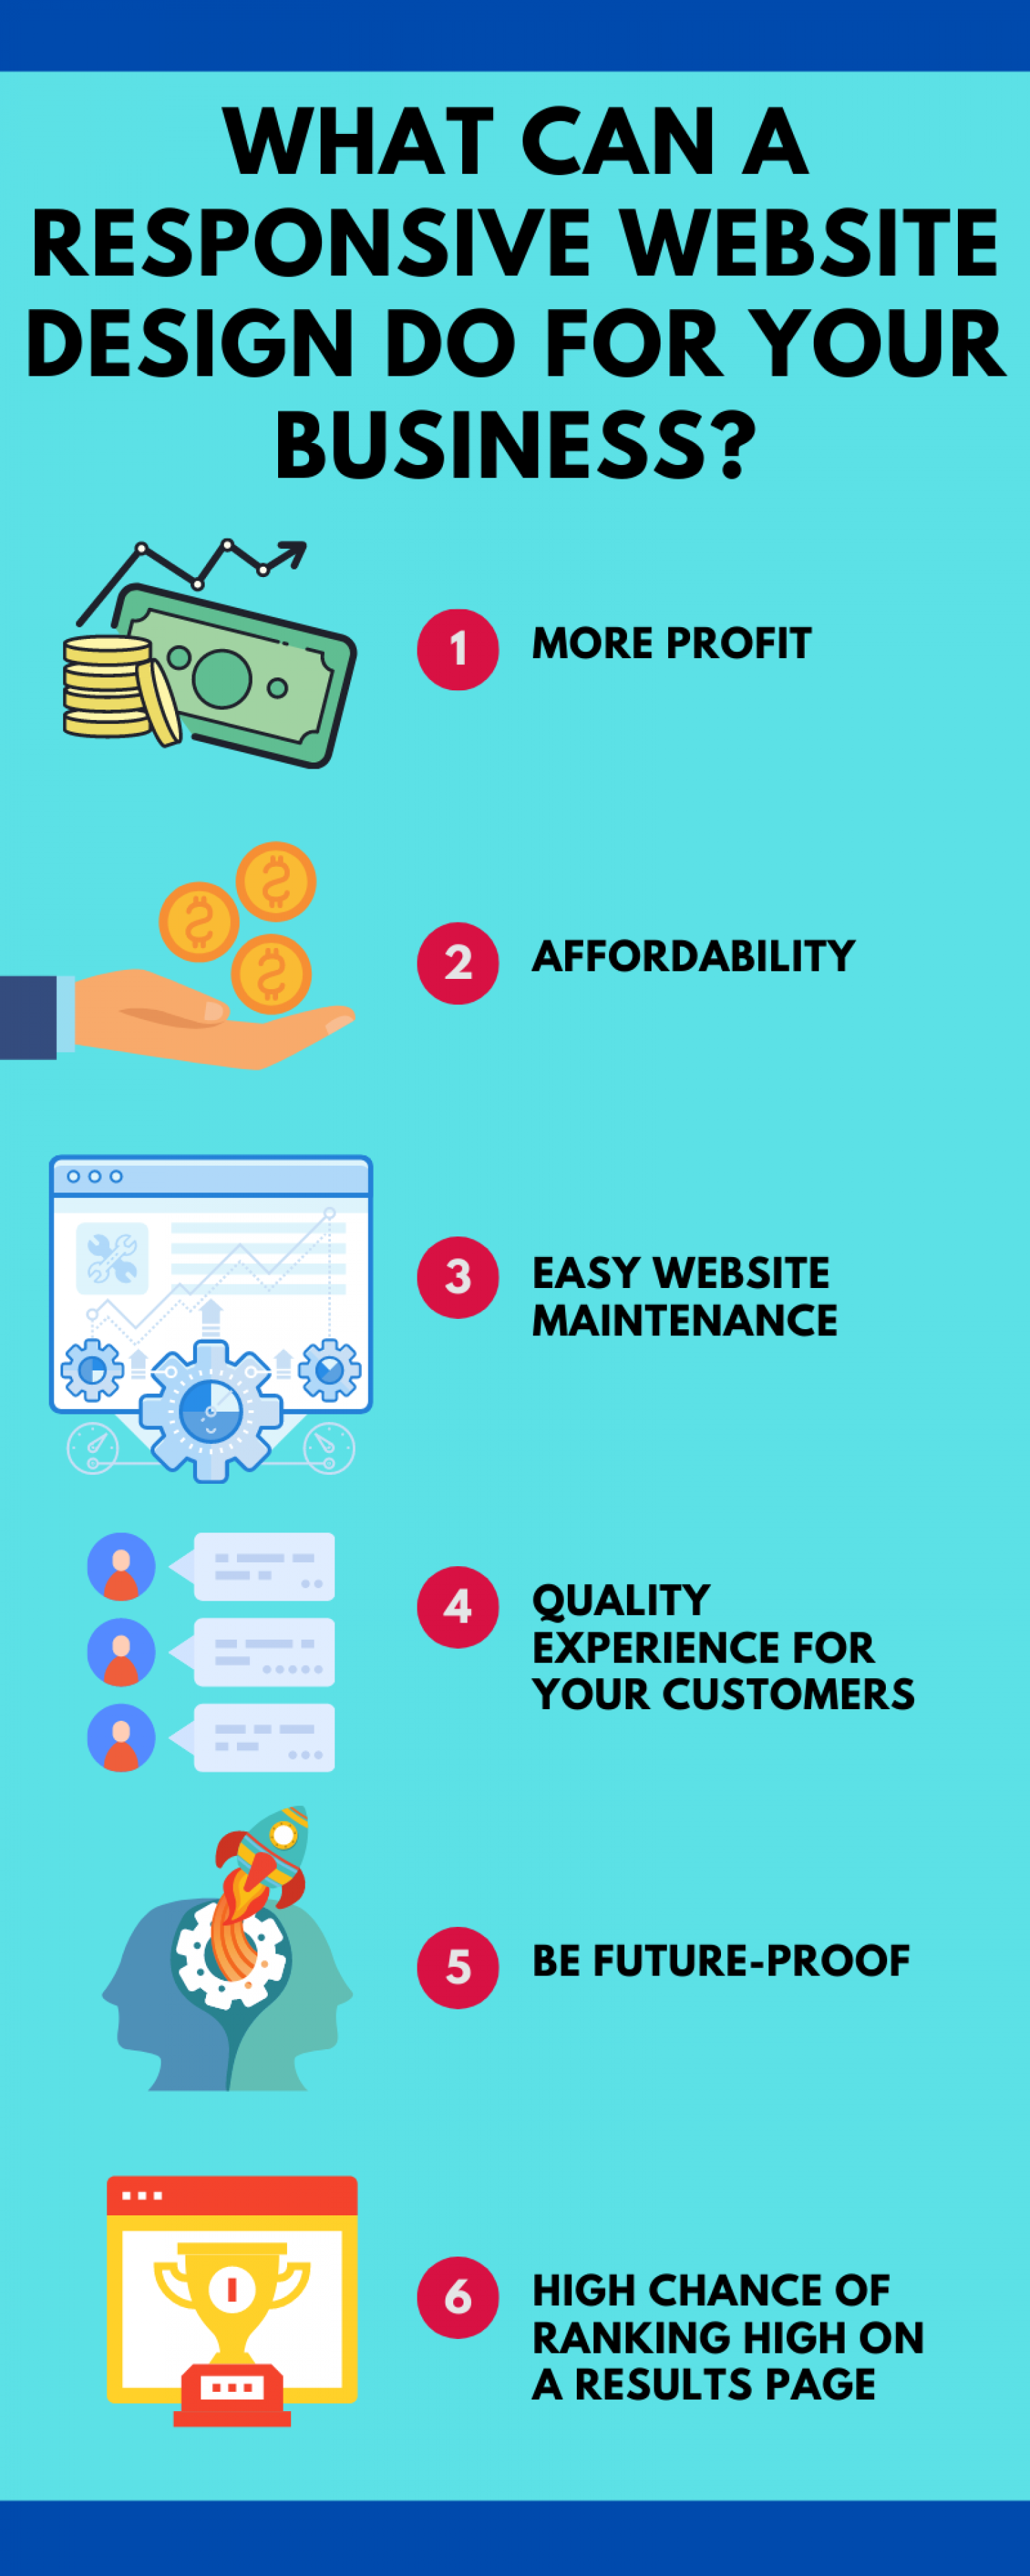 What Can A Responsive Website Design Do For Your Business? Infographic